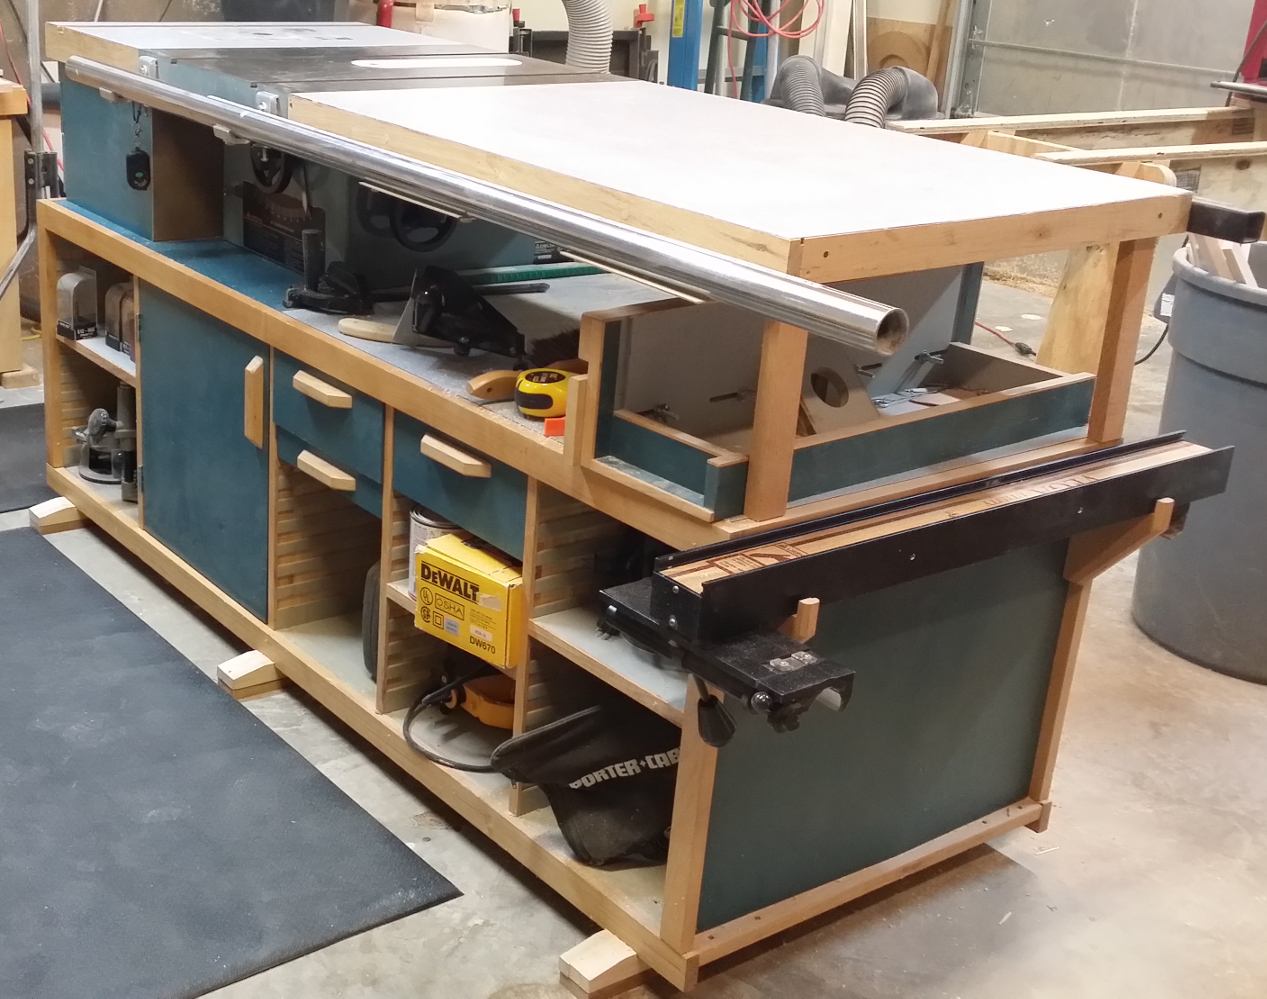 A classic workhorse turns 20 diary of a wood nerd table saw front view greentooth Image collections